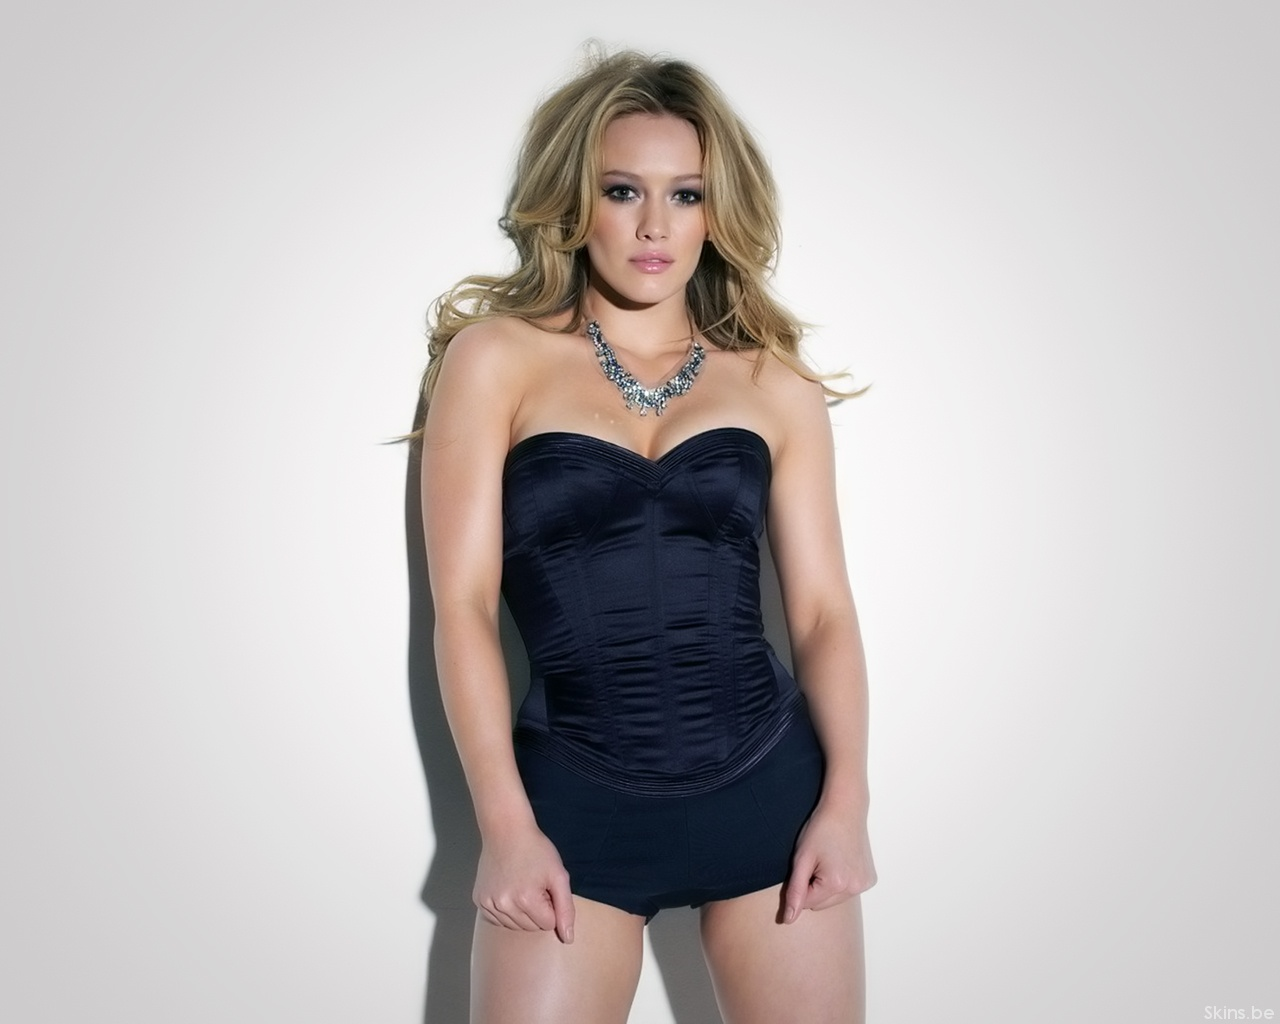 hilary duff unique hollywood photo | My Blog